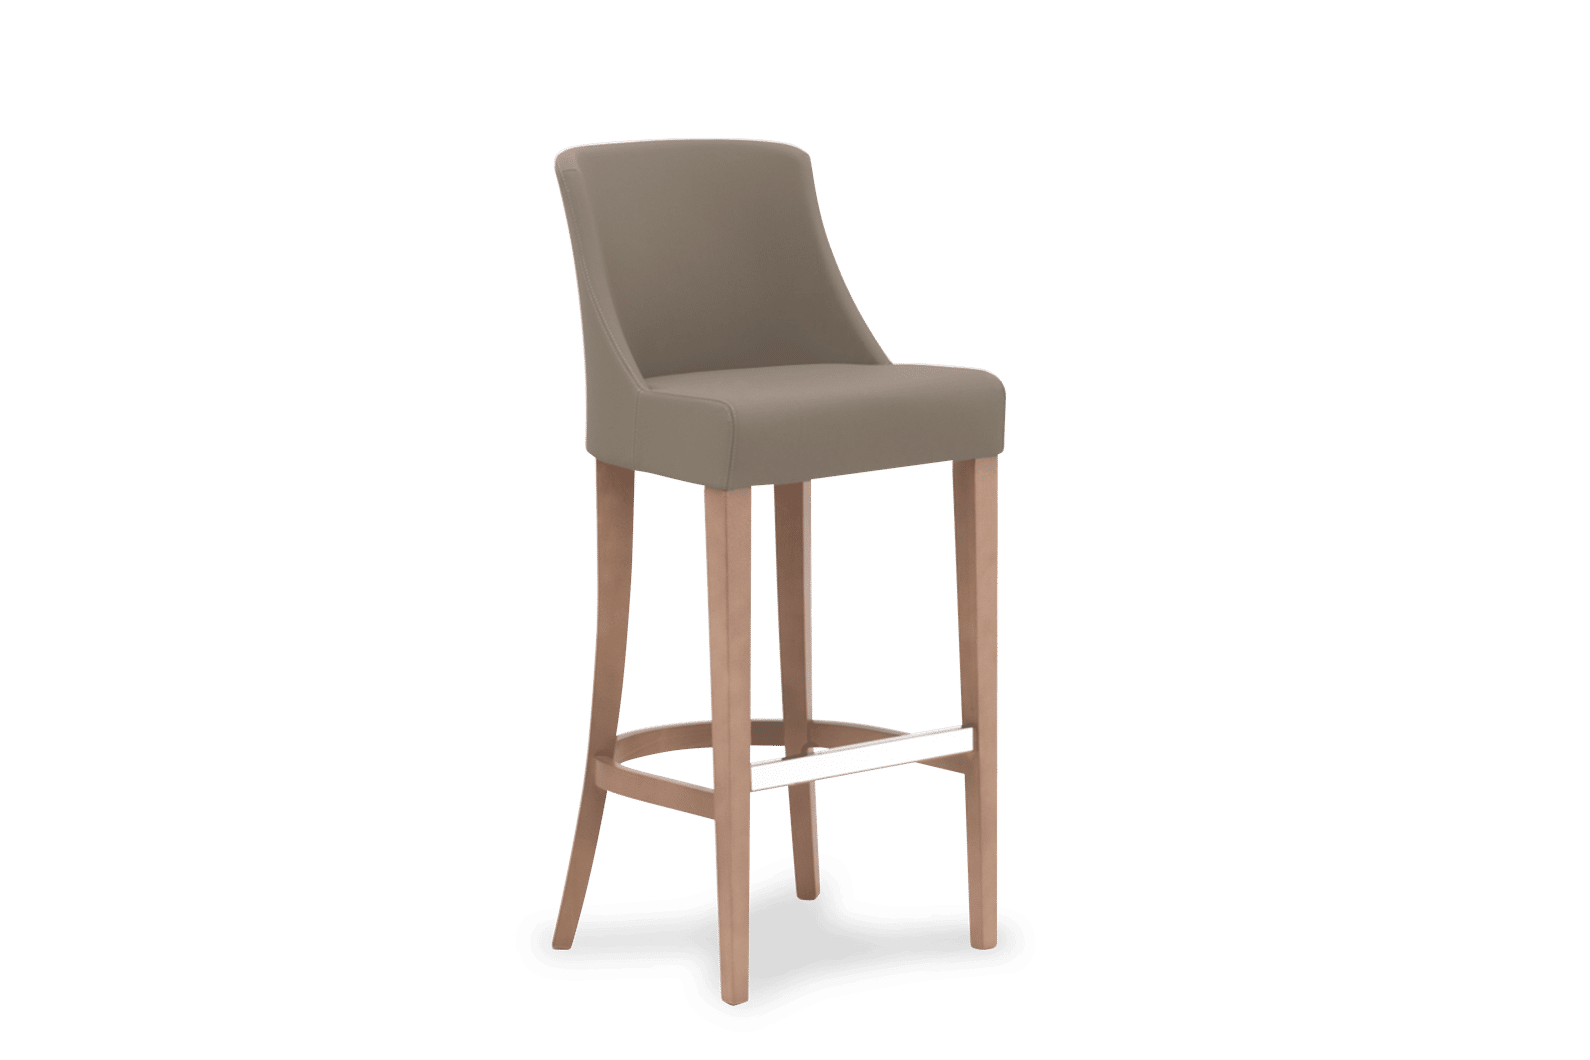 ST Ambra Stool Staine Natural Beige copy